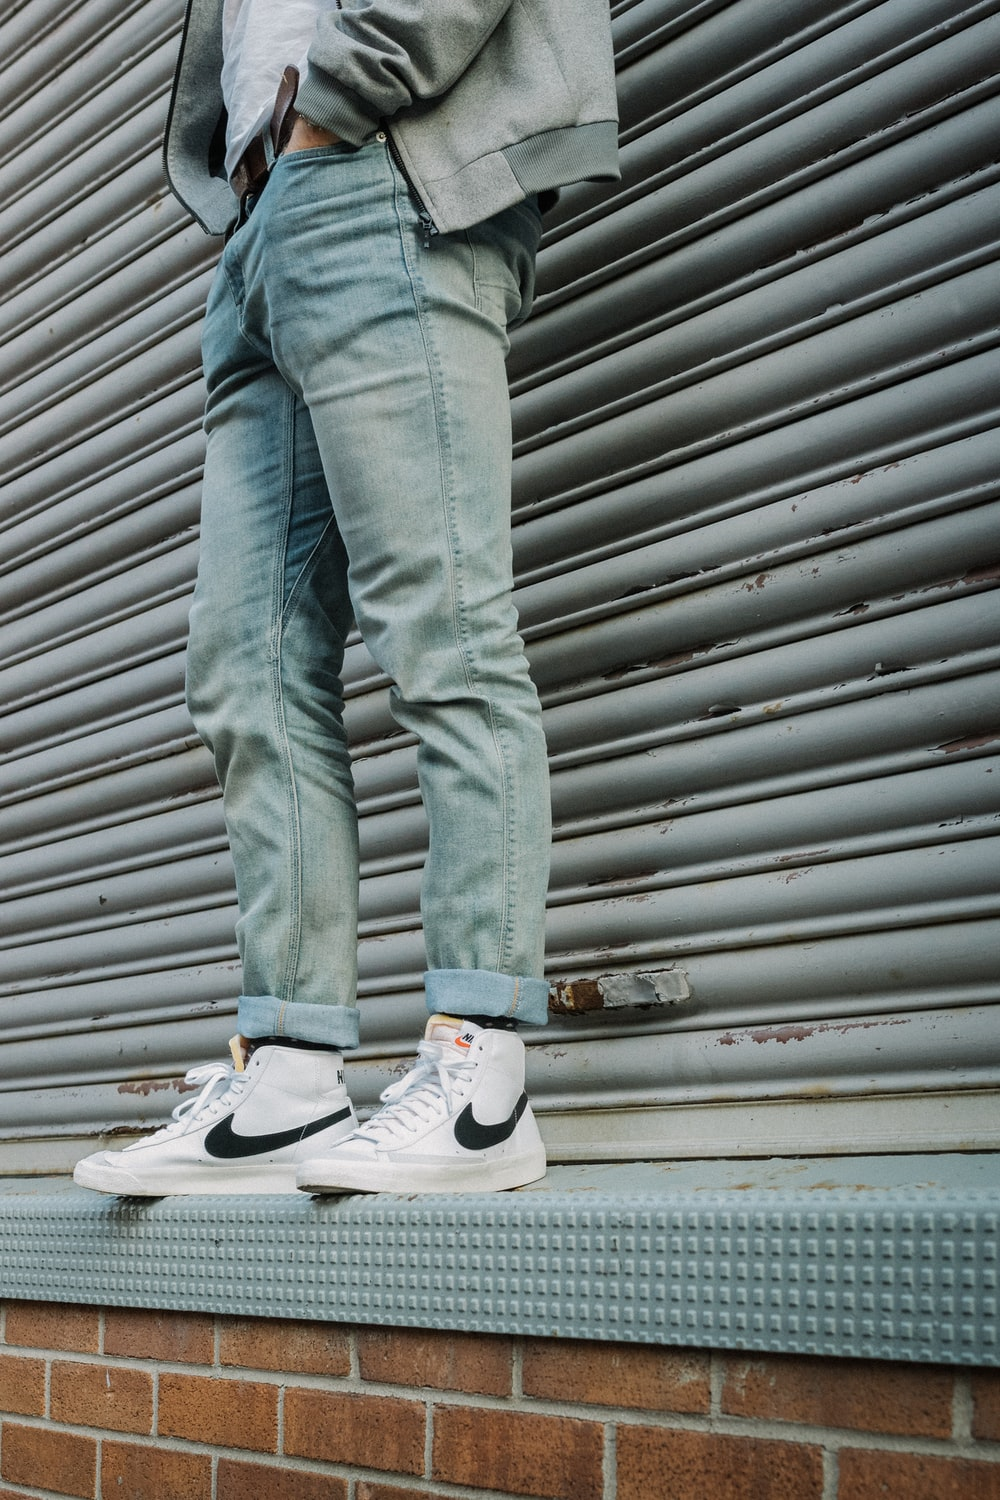 person in gray denim jeans and gray nike sneakers